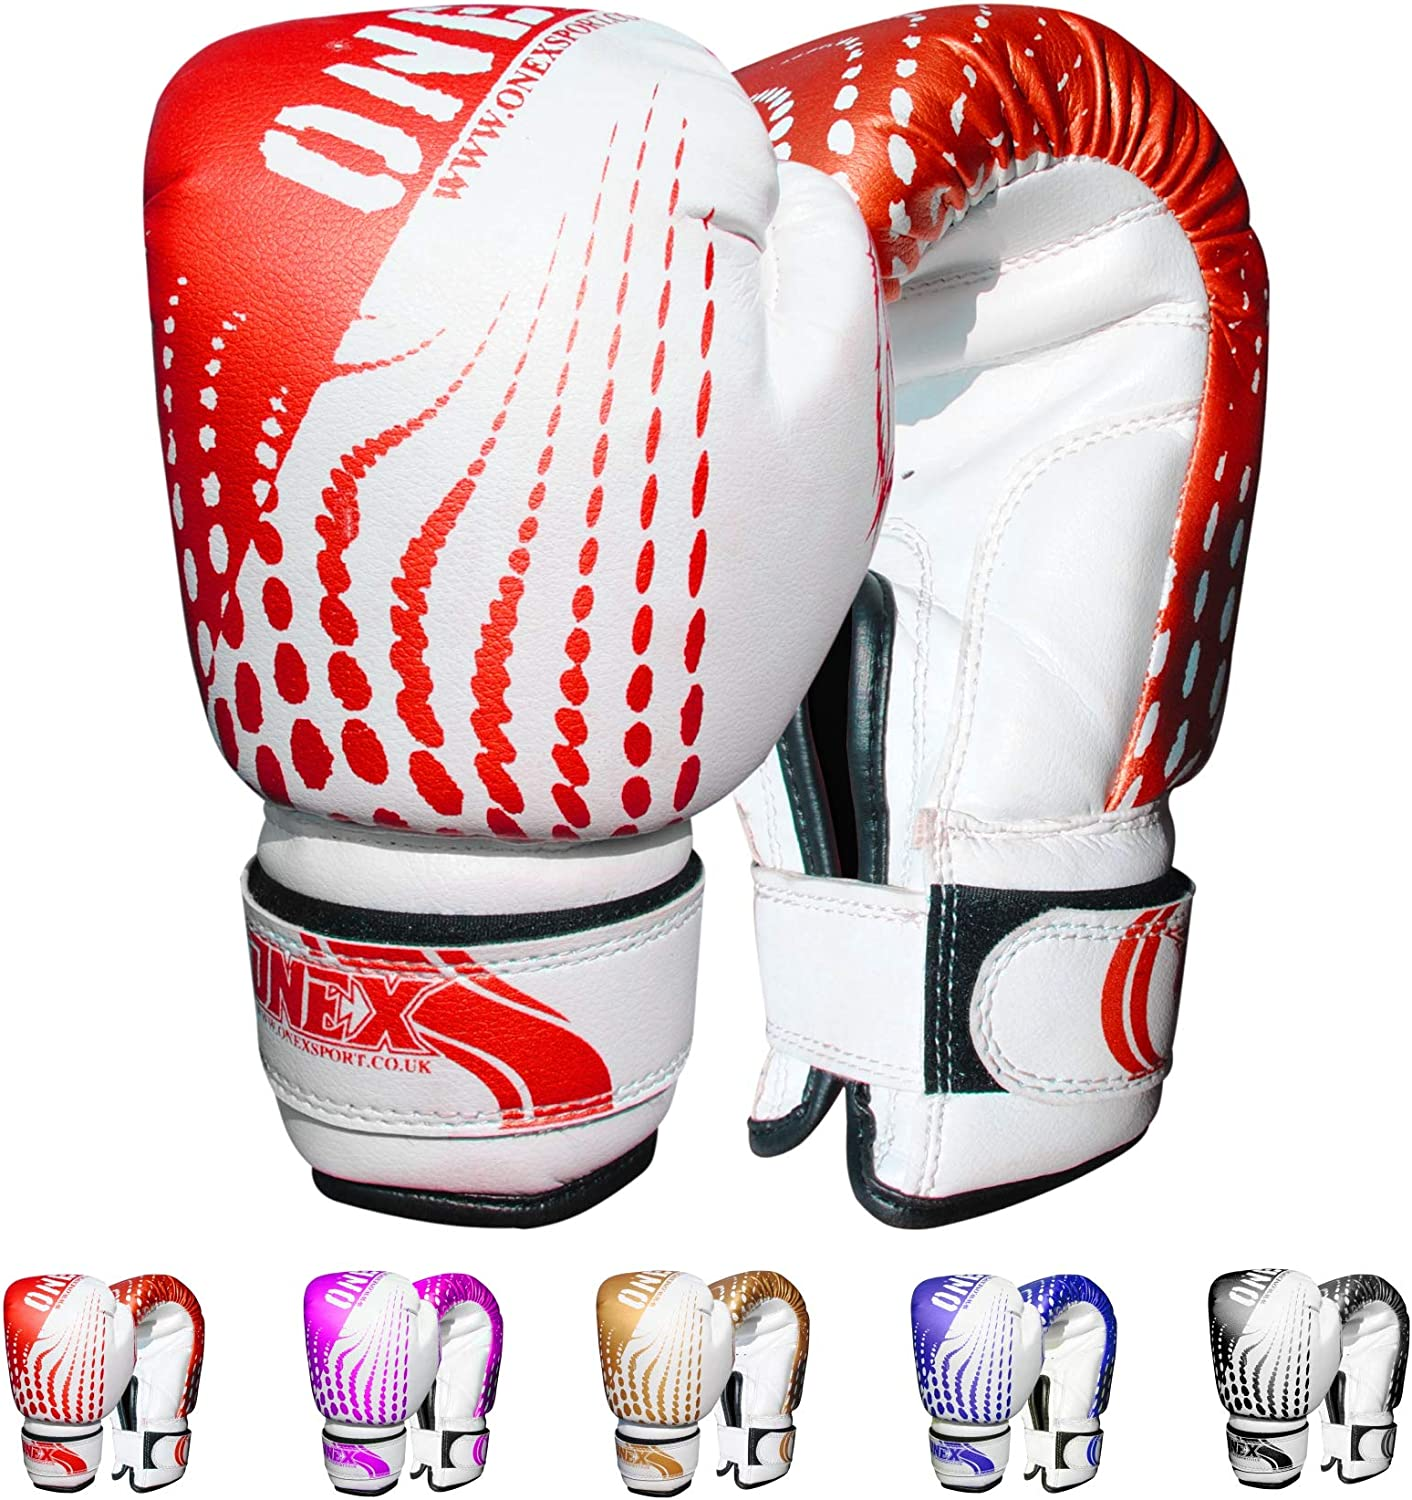 Kids Boxing Gloves Junior Punching Bag Mitts MMA Training Sparring 6oz Red//White